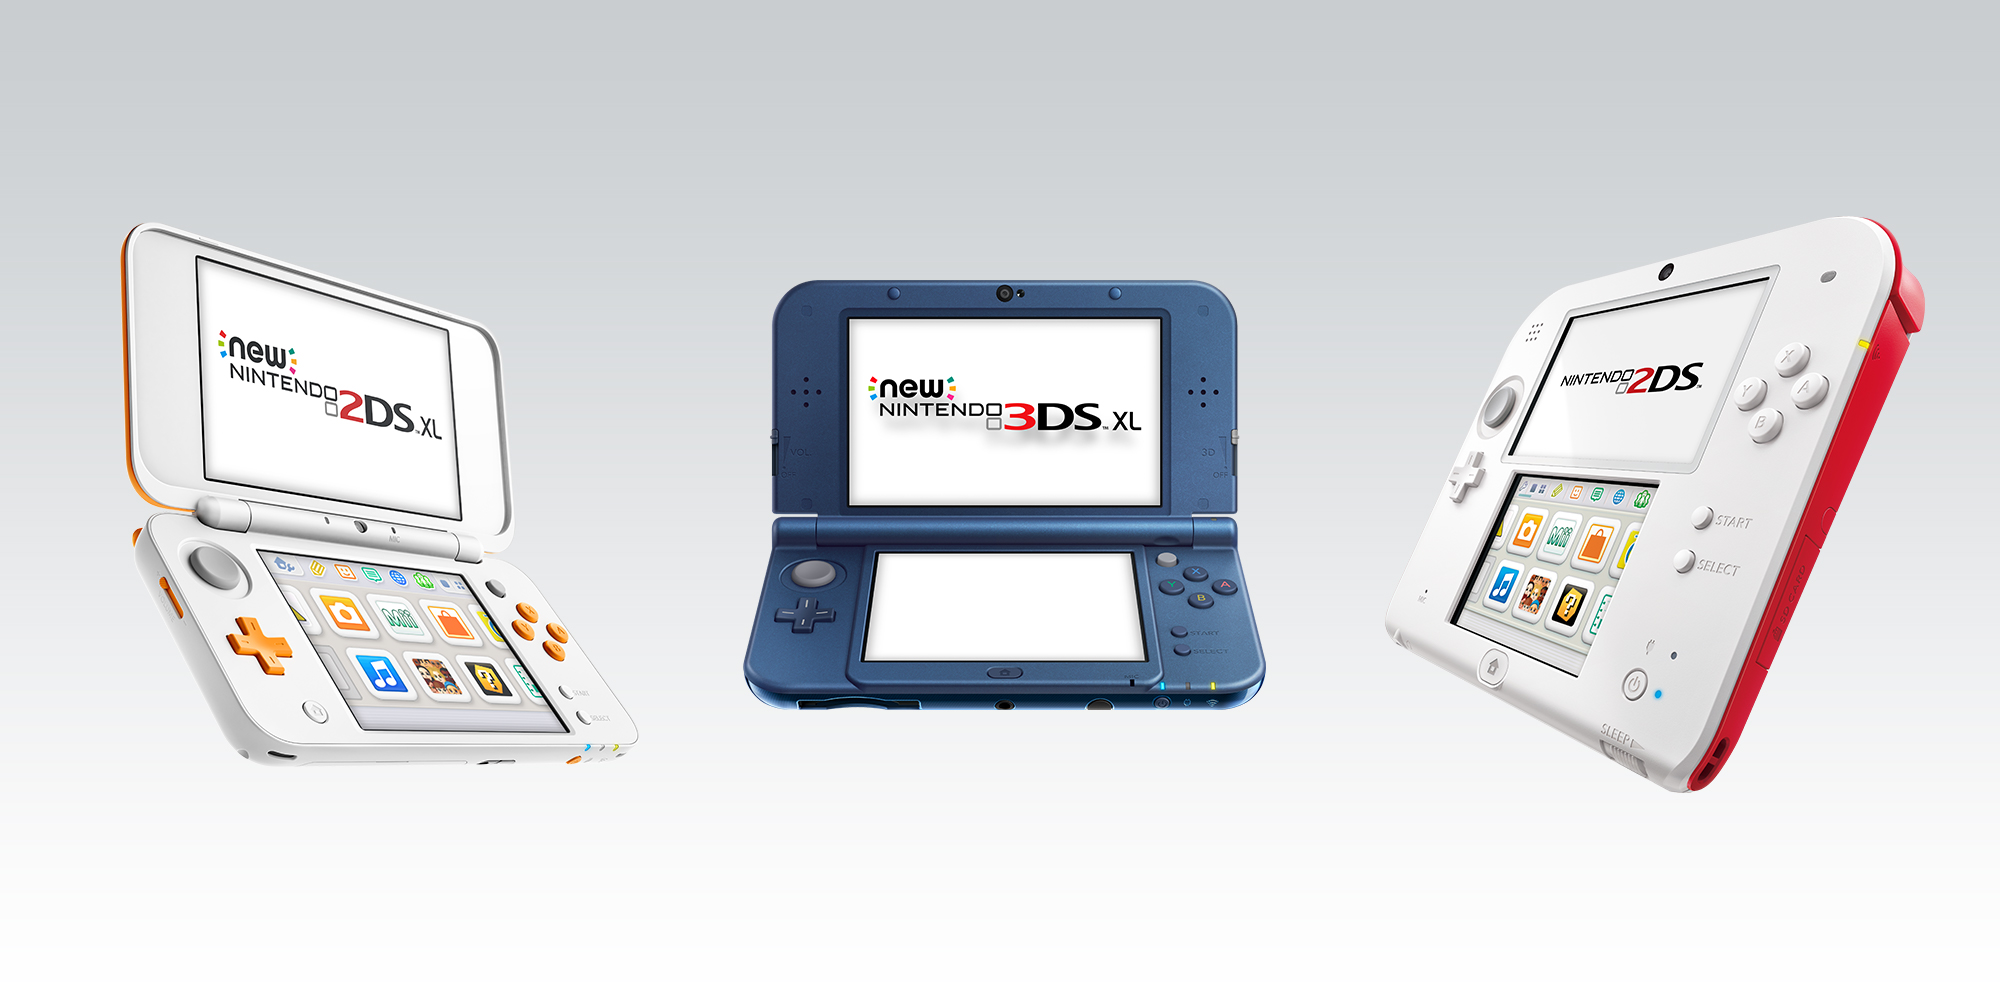 Nintendo 3ds Games 2020.Nintendo 3ds Family Nintendo